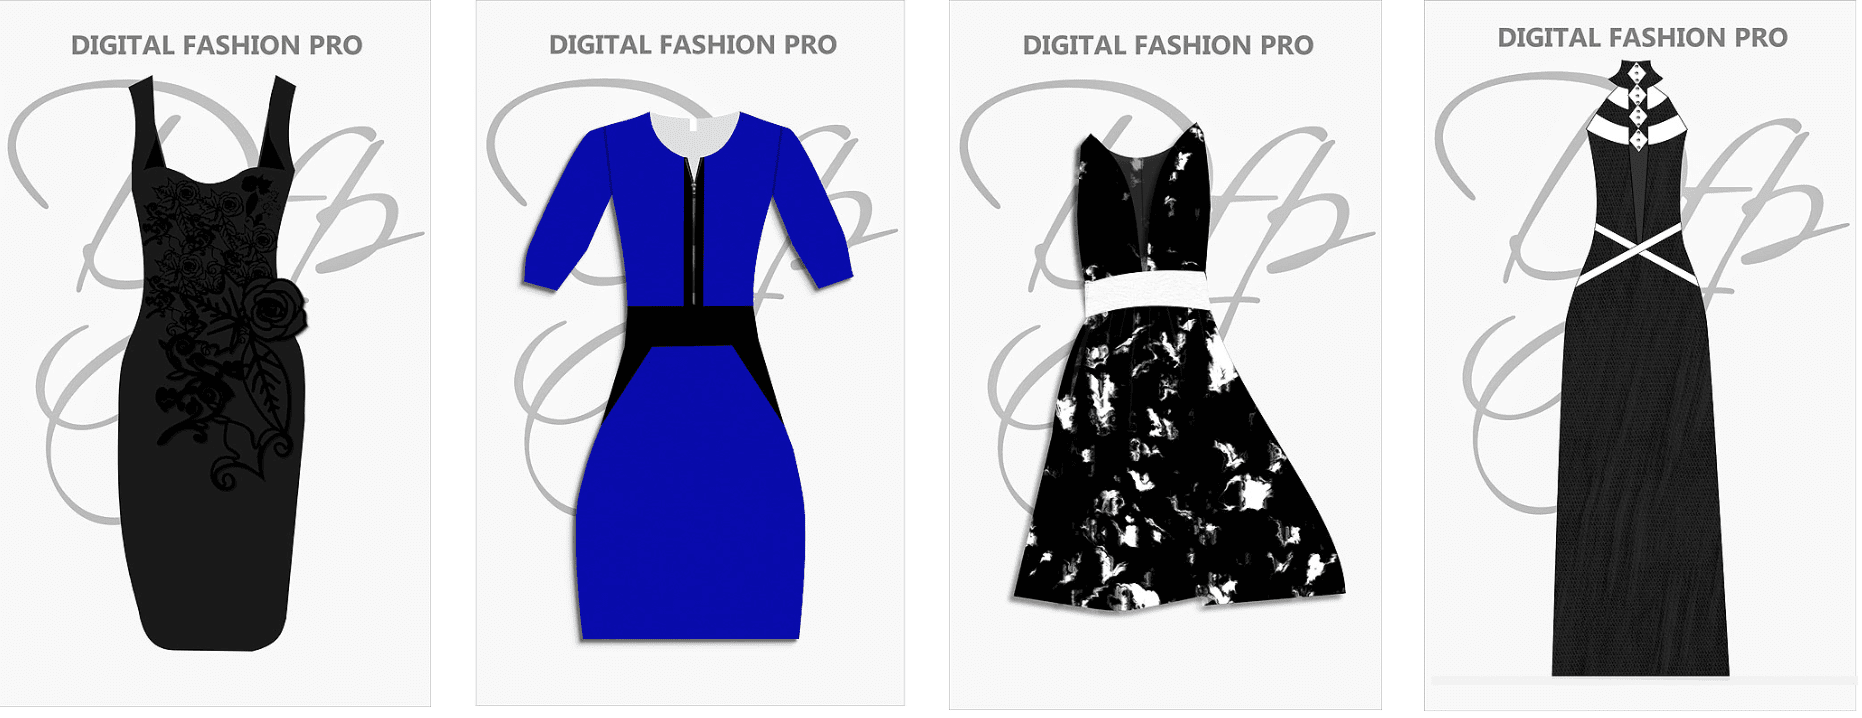 Best Fashion Design Software For Designing Cothing - Beginner Friendly